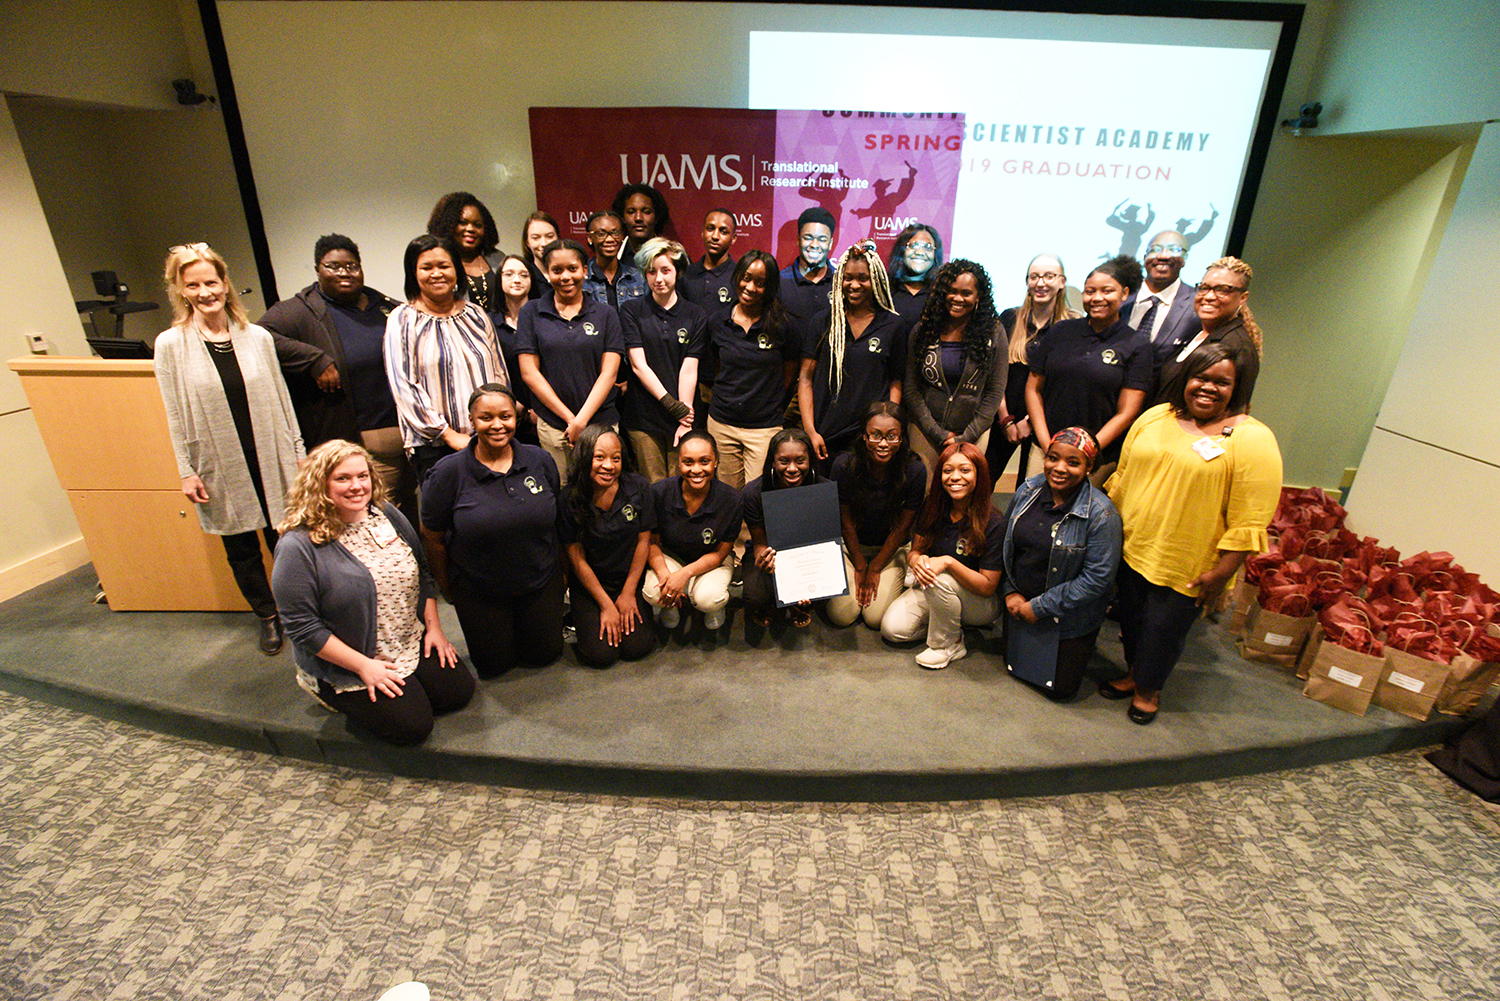 Students in the Little Rock School District's Excel Program were the first high school students to graduate from the Community Scientist Academy.